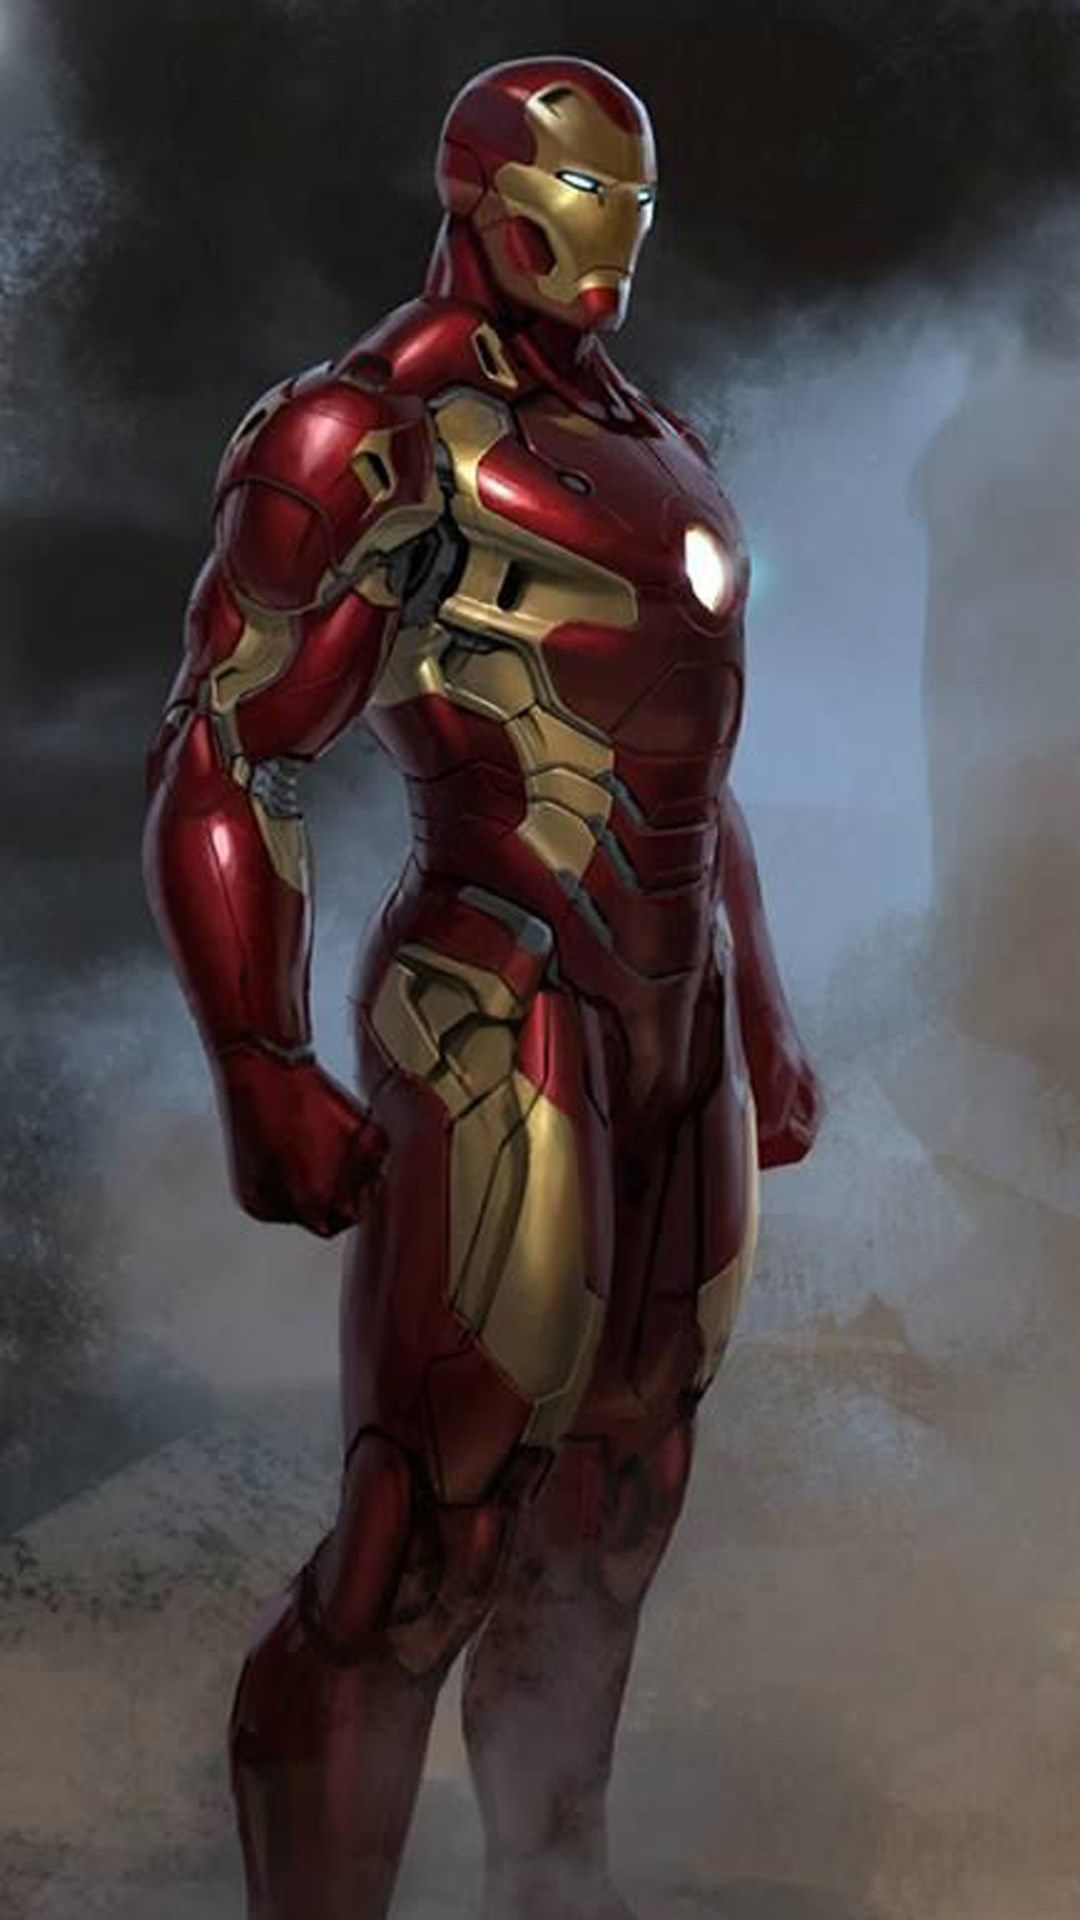 cool iron man 8 bit iphone wallpaper (With images) Iron man